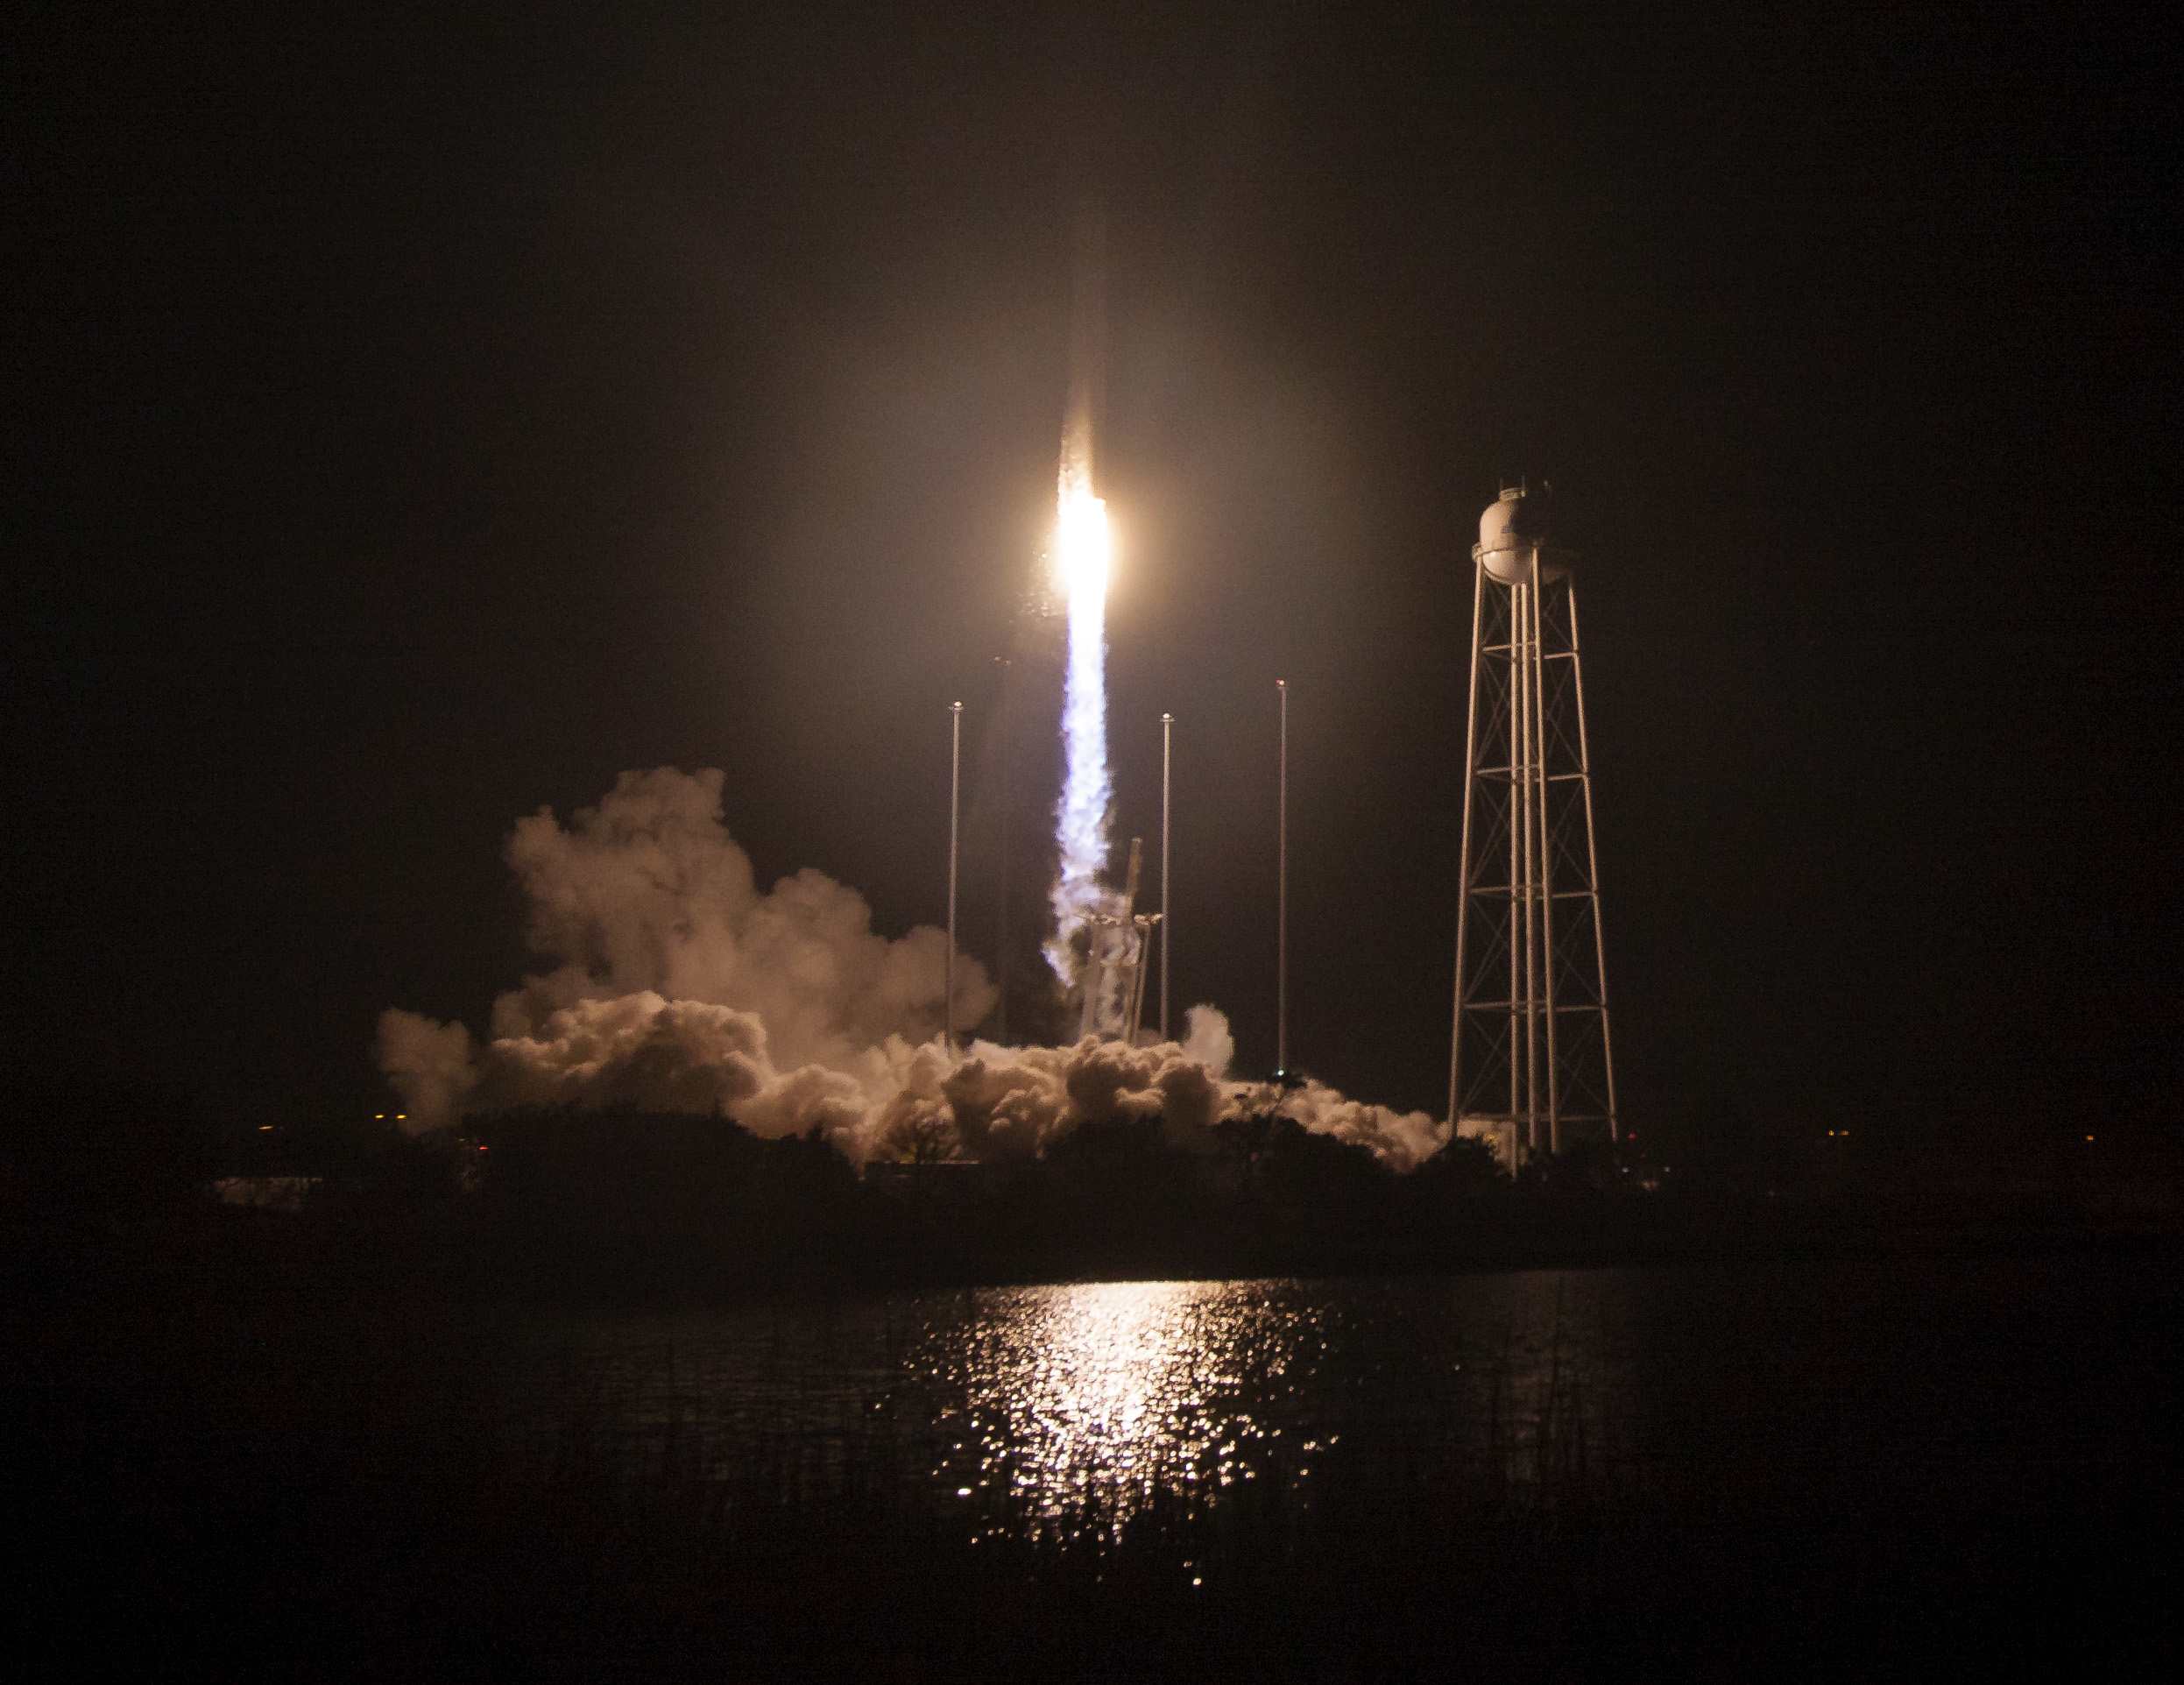 Experts concerned by SpaceX plan to fuel rockets with people aboard